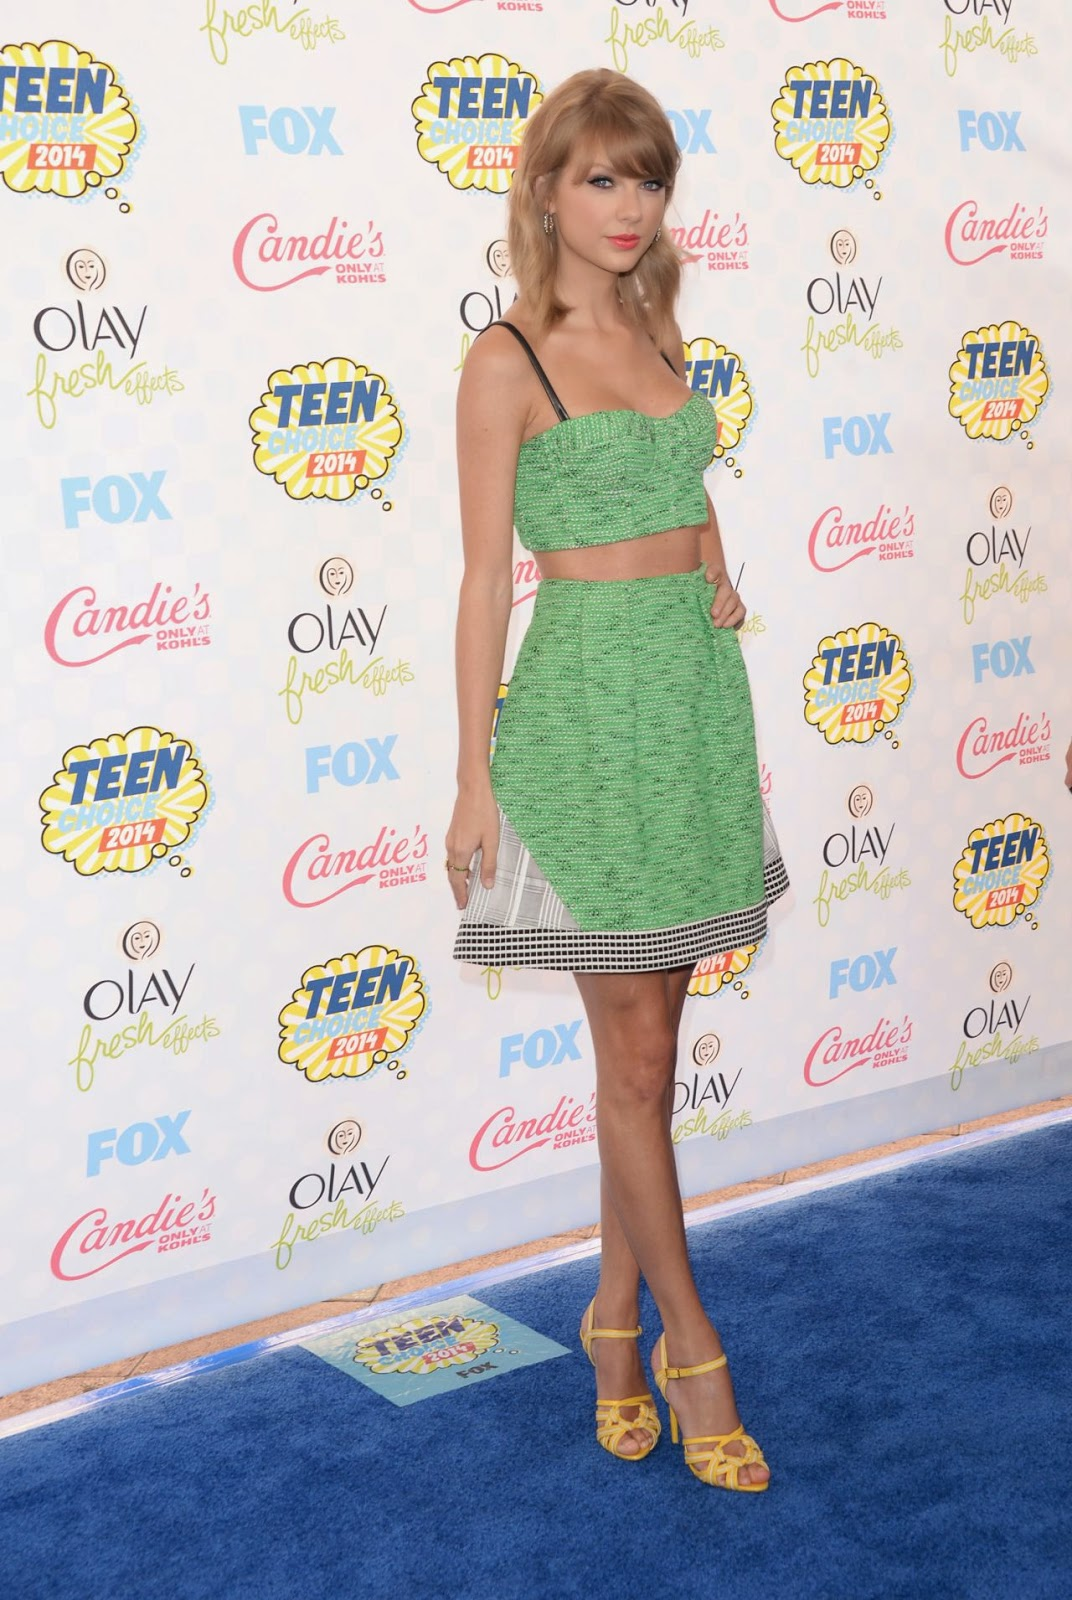 Taylor Swift in a tweed cropped top and skirt at the 2014 Teen Choice Awards